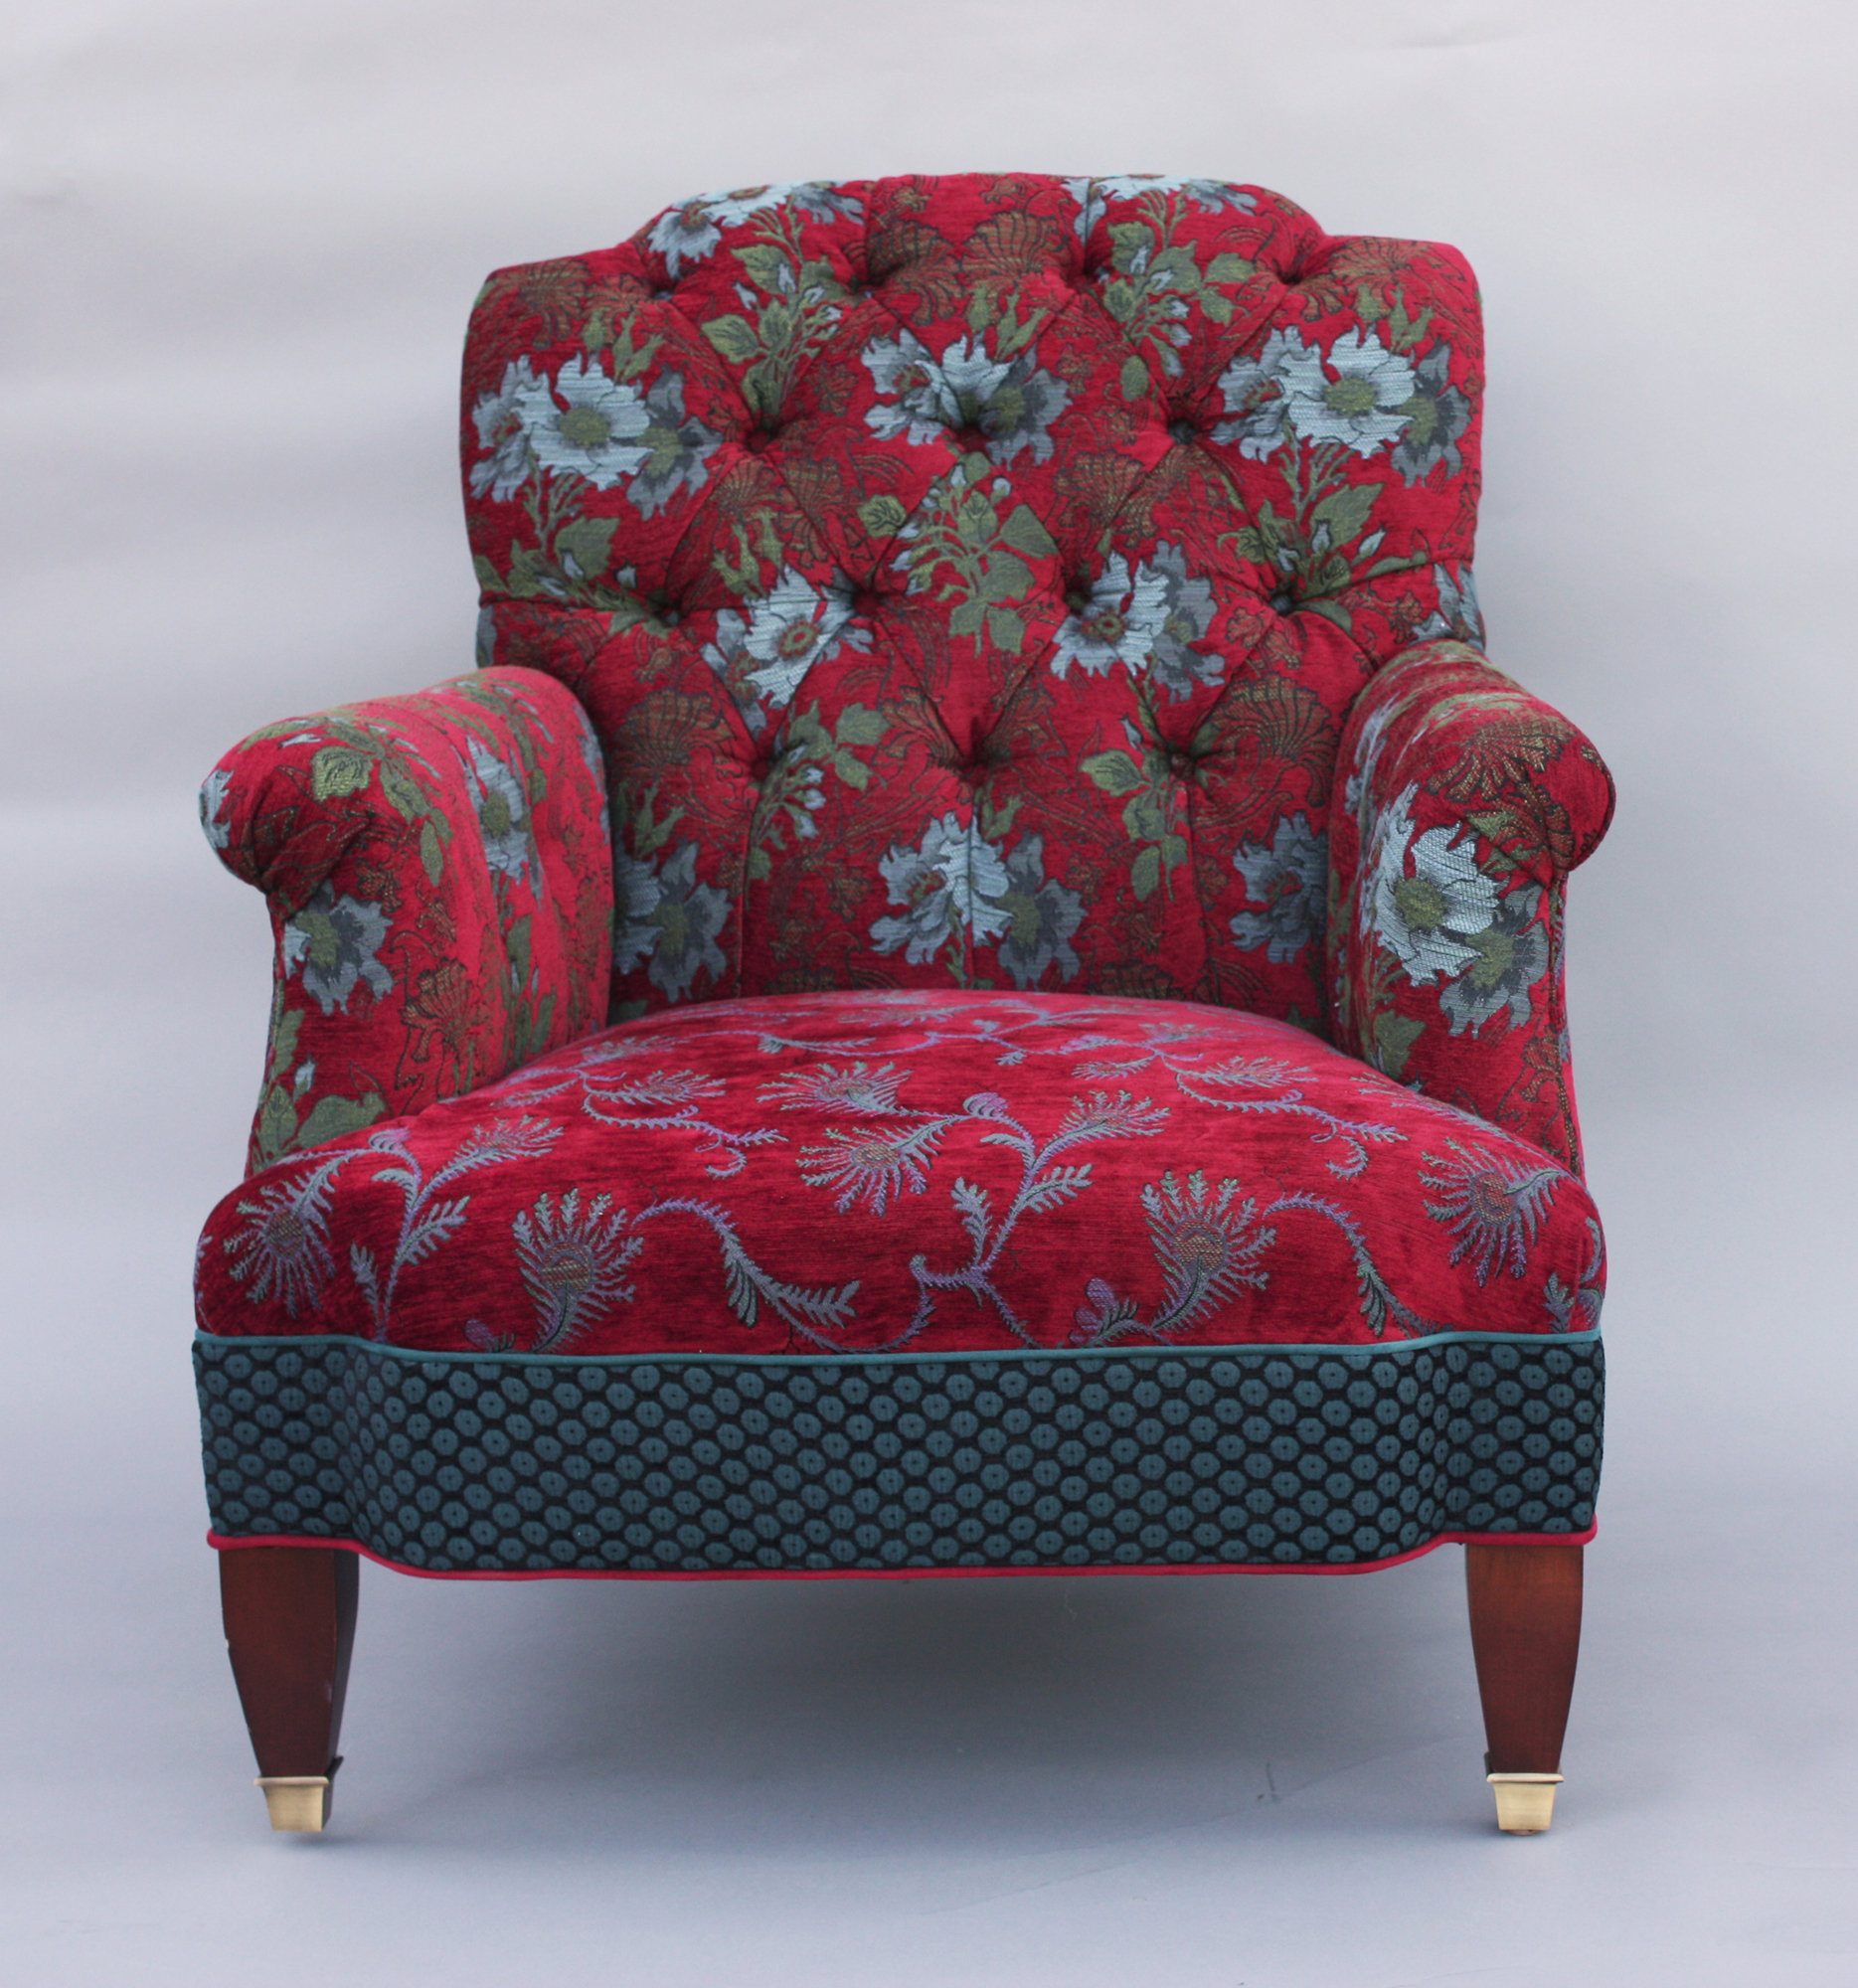 Chelsea Chair in Red Wine by Mary Lynn OShea Upholstered Chair – Upolstered Chair